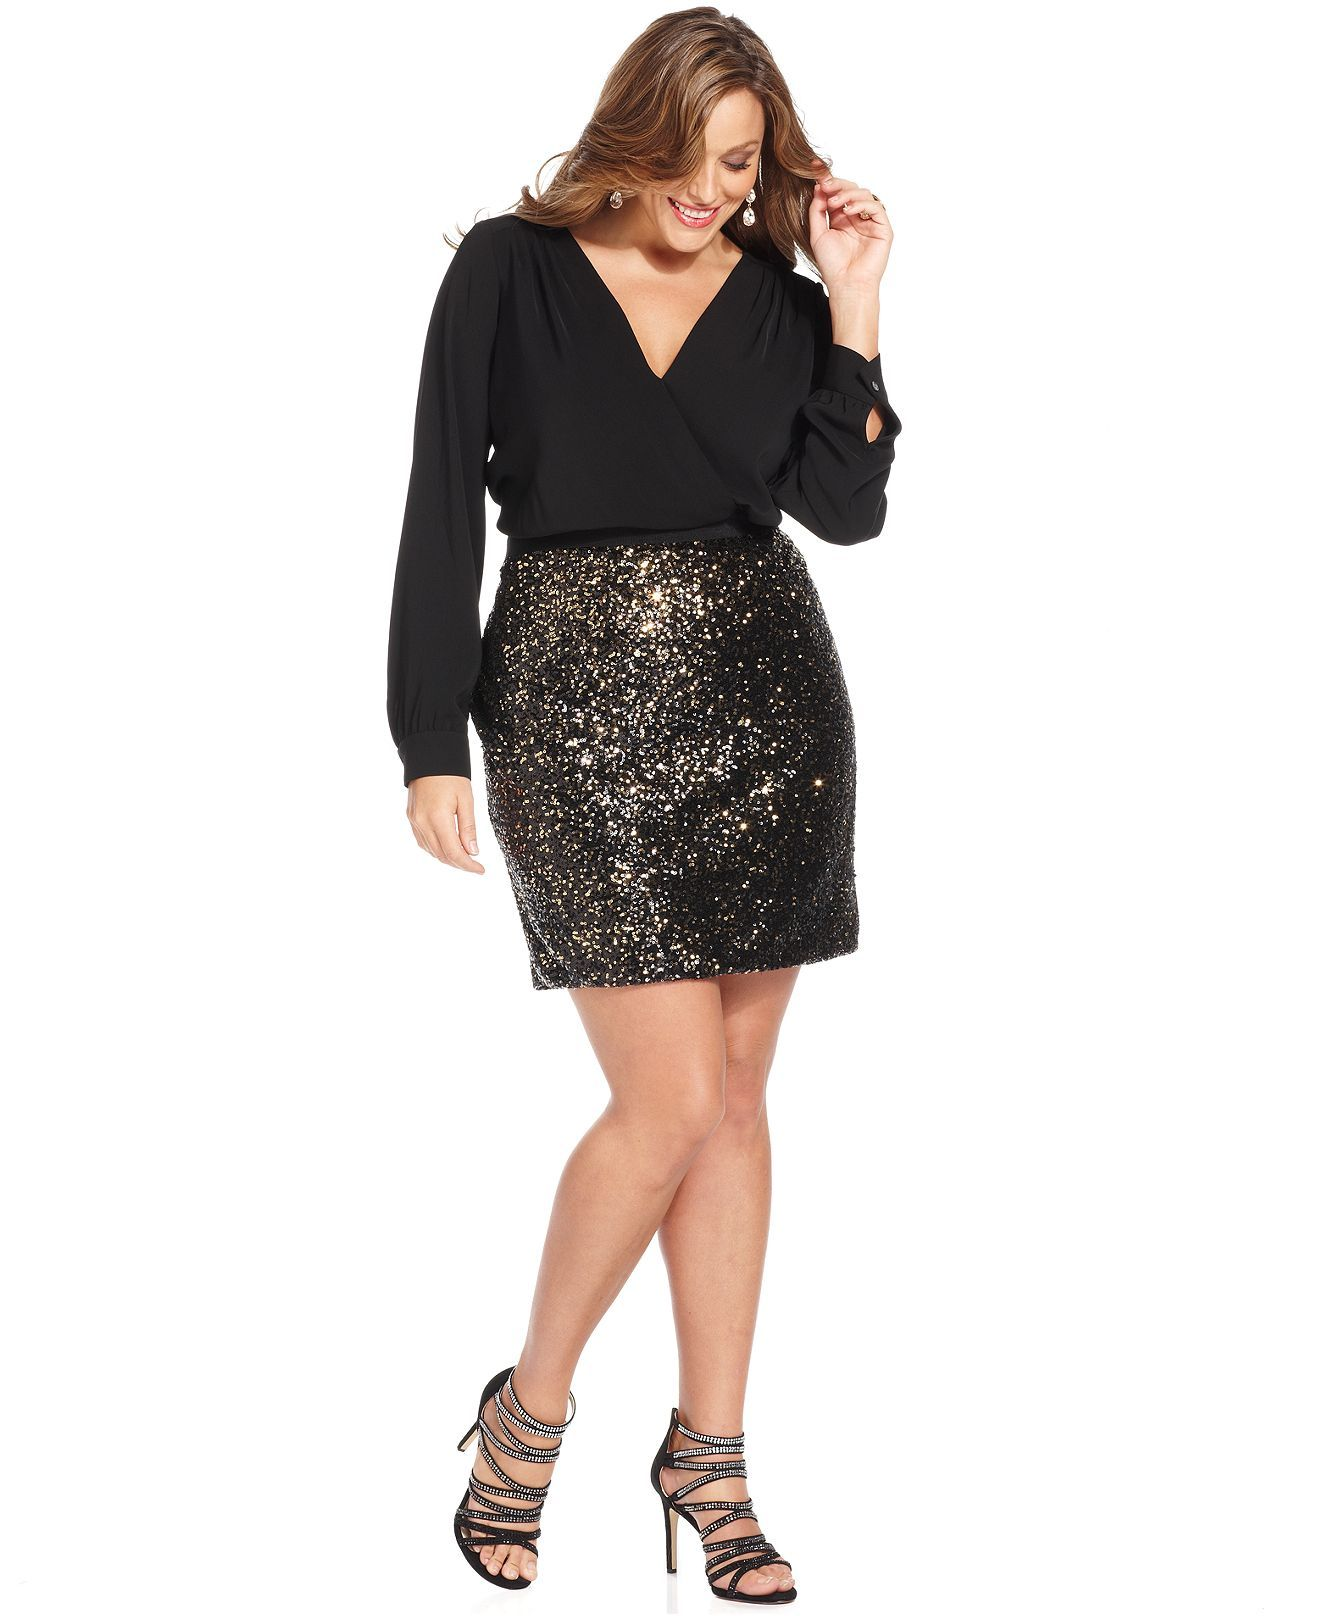 DKNYC Plus Size Dress, LongSleeve Surplice Sequin Plus